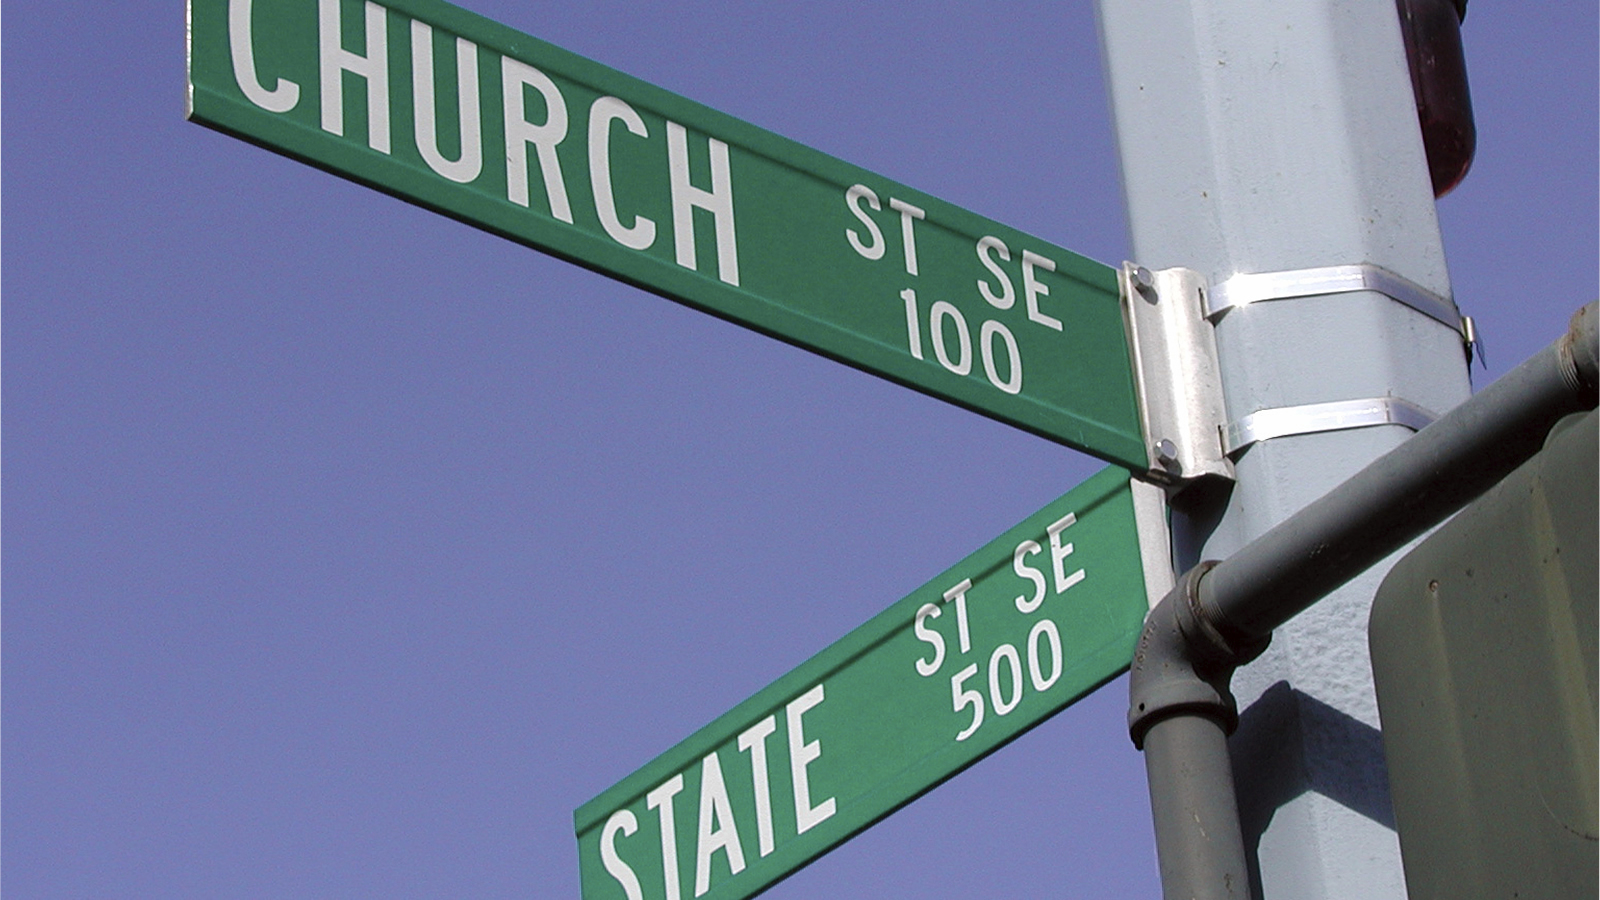 Church and State Street Signs Intersecting